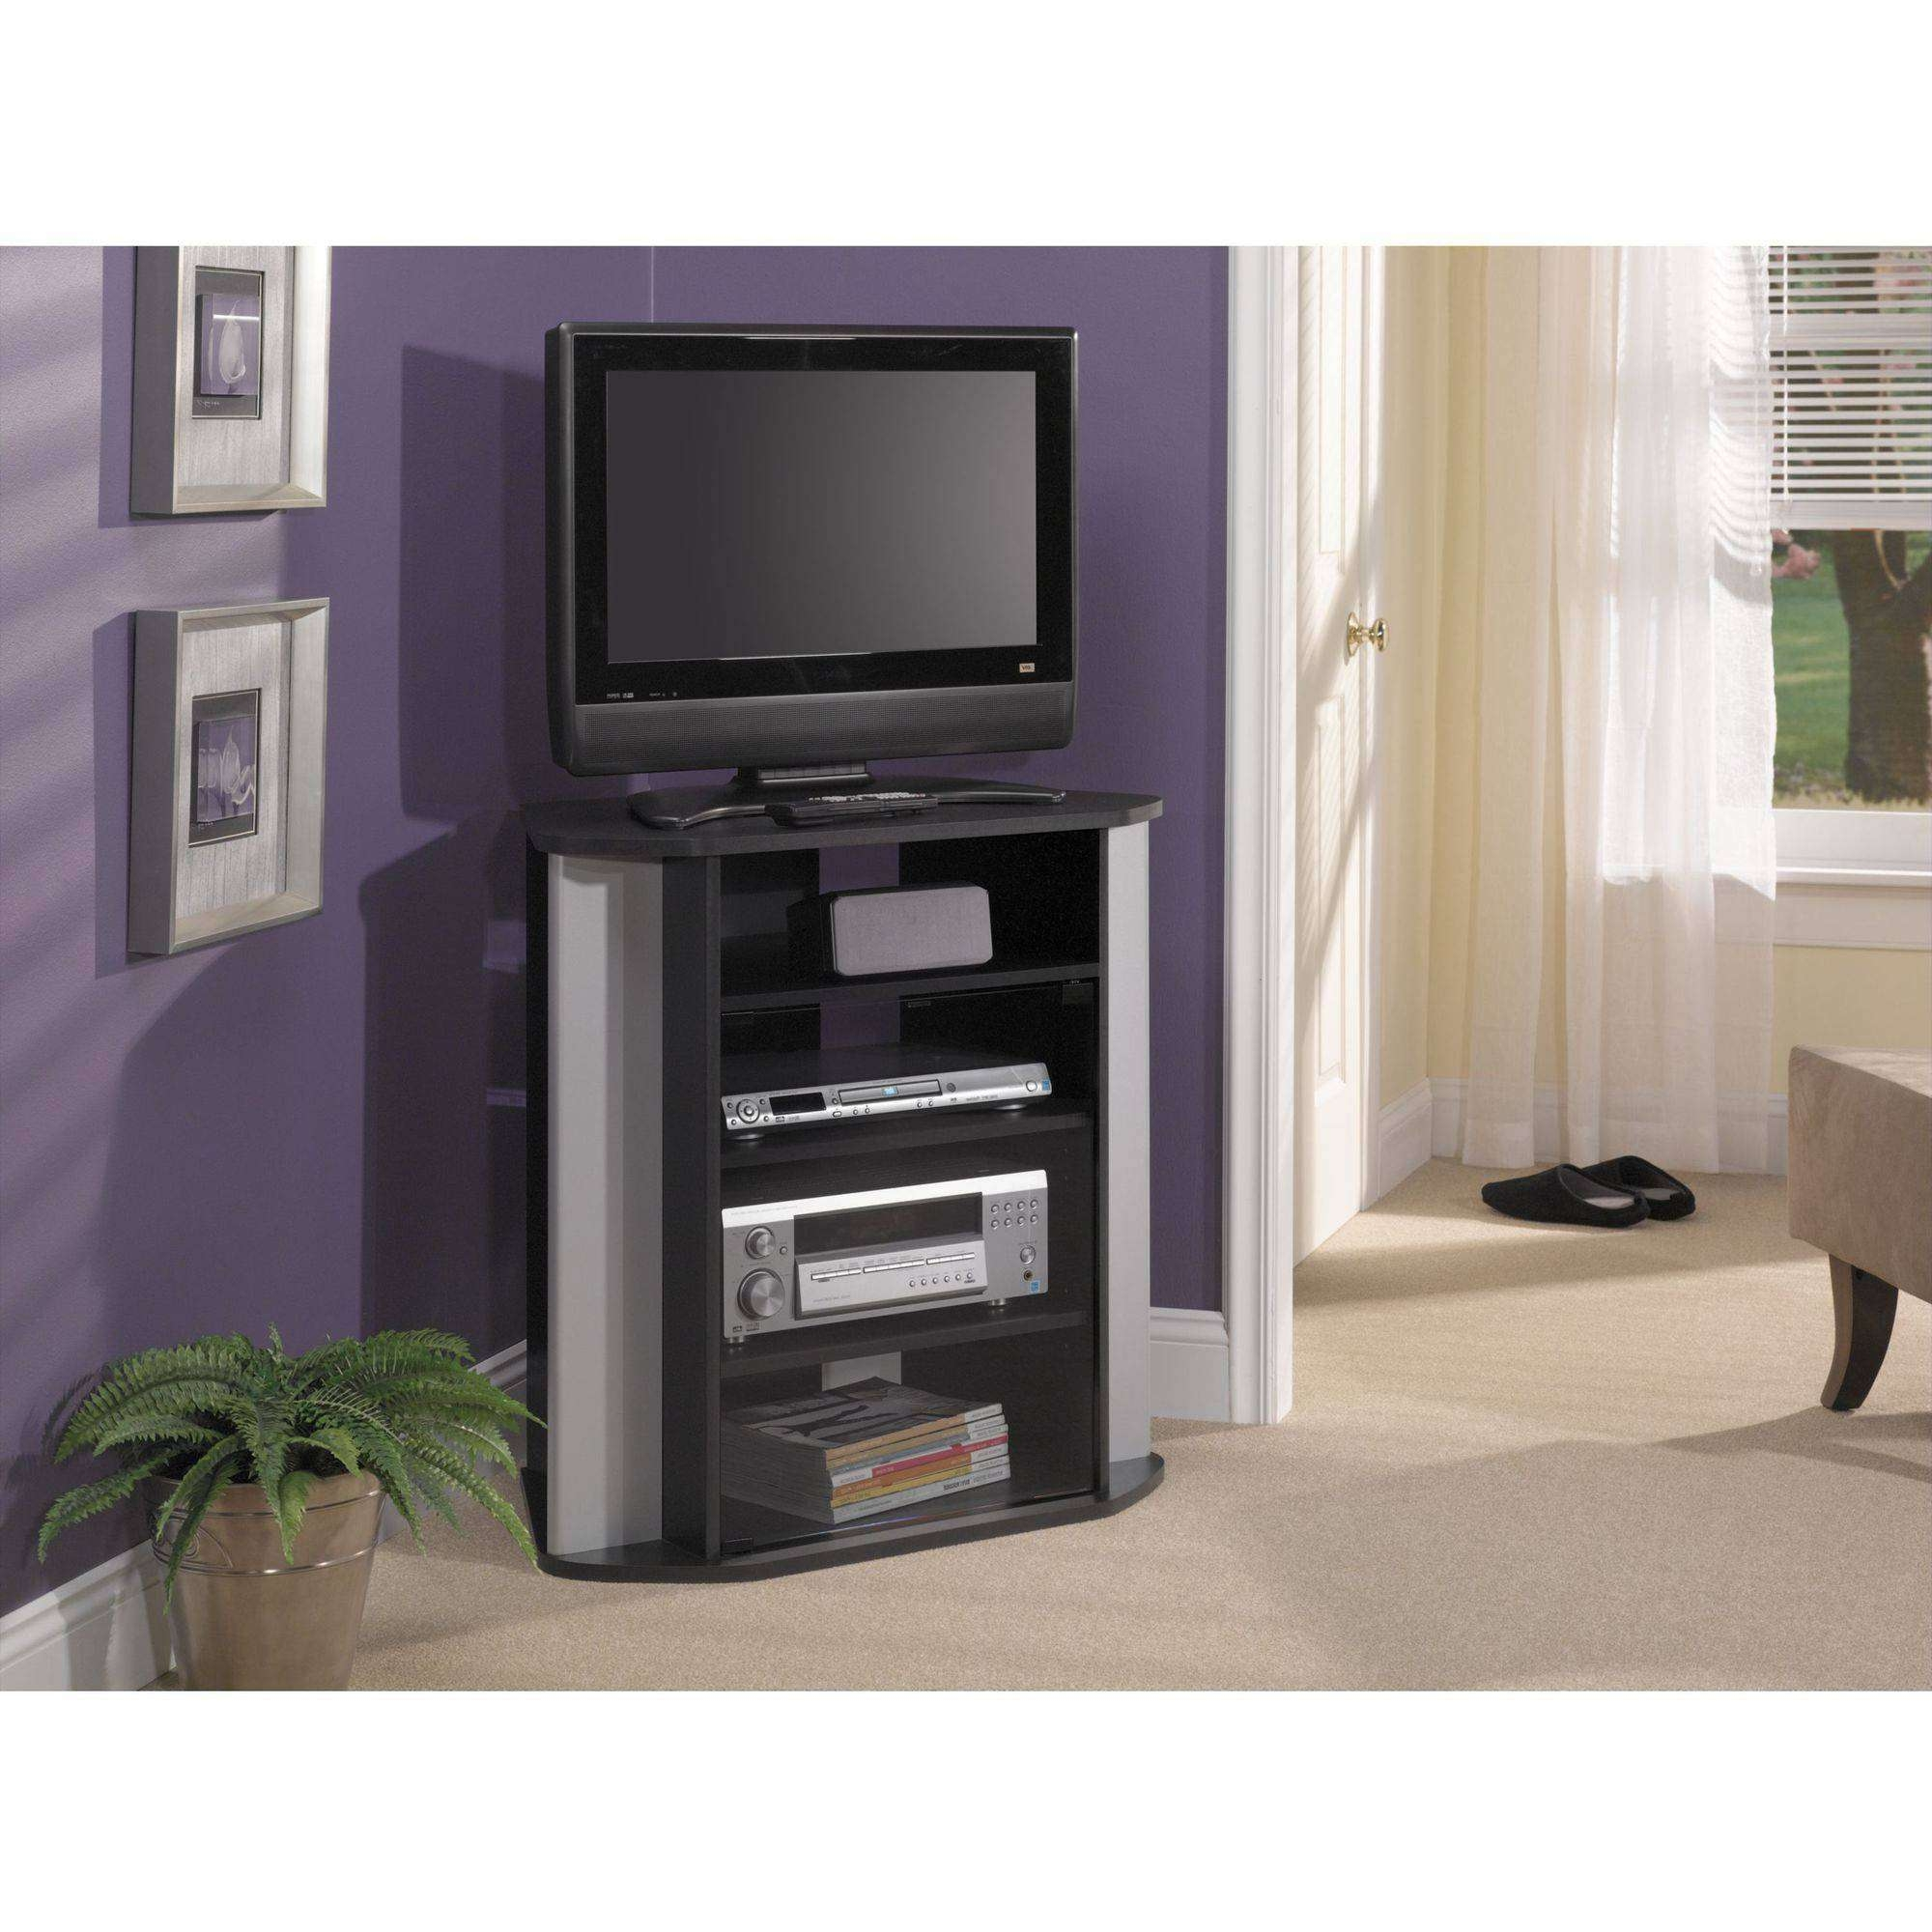 Bush Visions Black Tall Corner Tv Stand, For Tvs Up To 37 With Regard To Black Wood Corner Tv Stands (View 12 of 15)